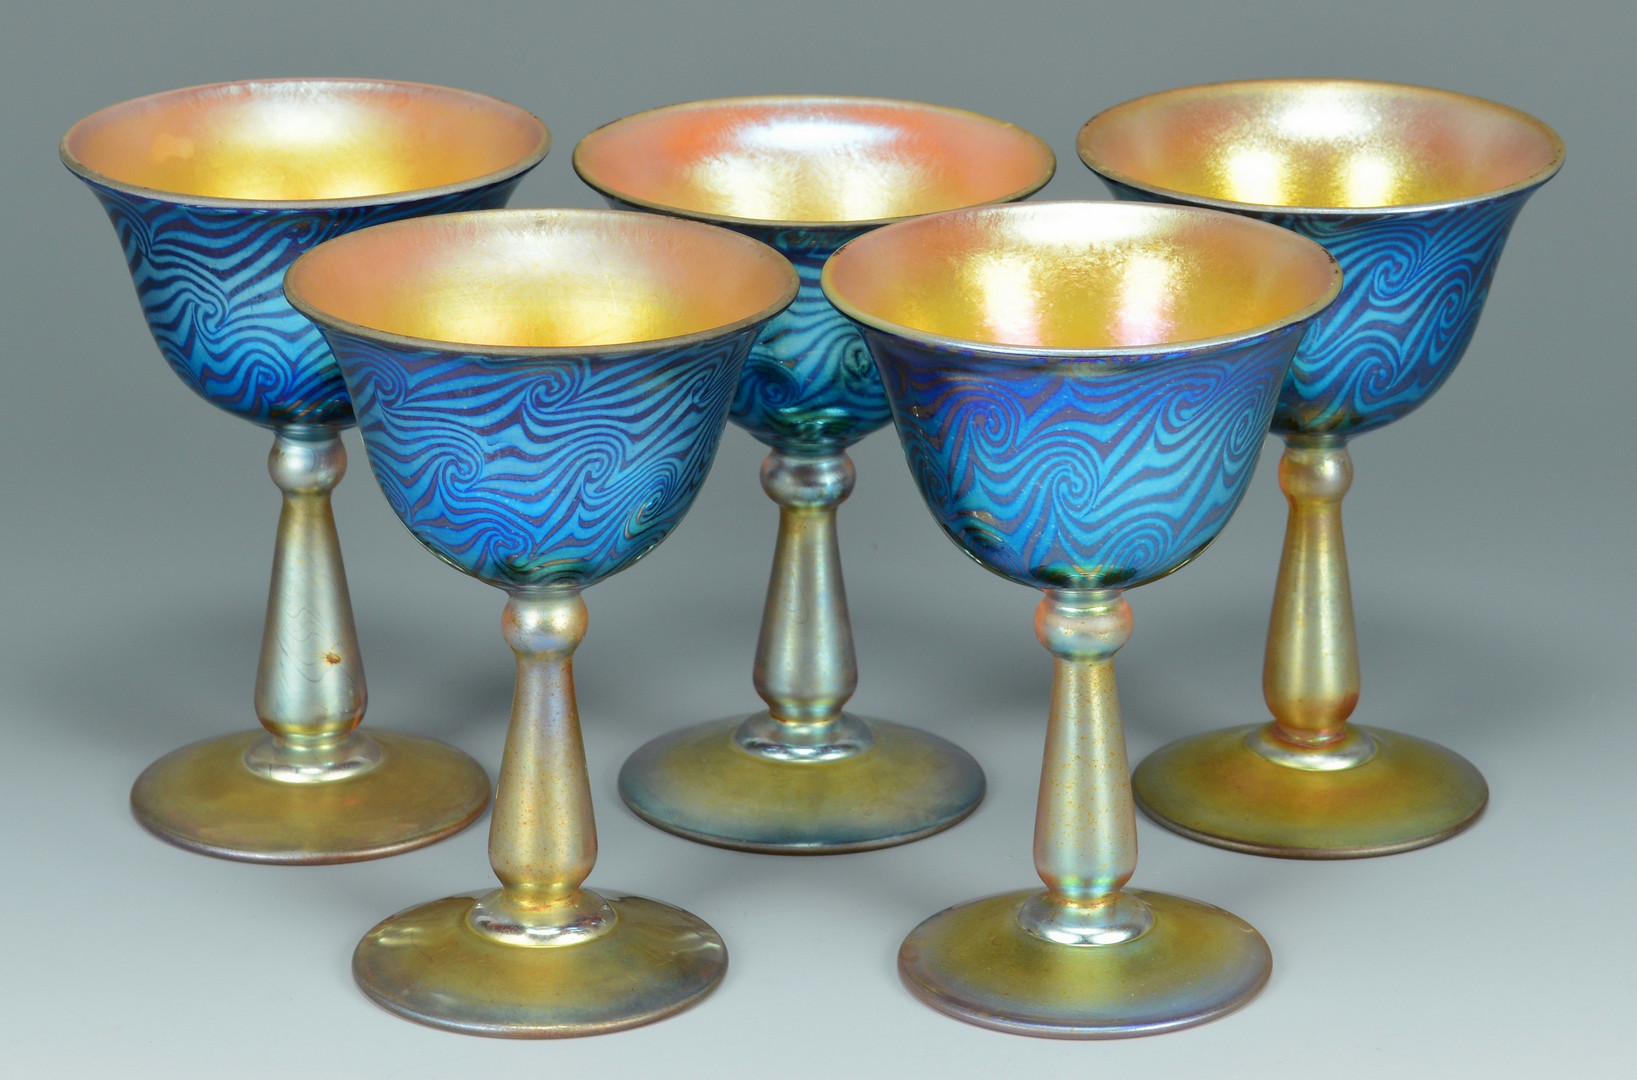 Lot 119: 5 Durand King Tut glass sherbets